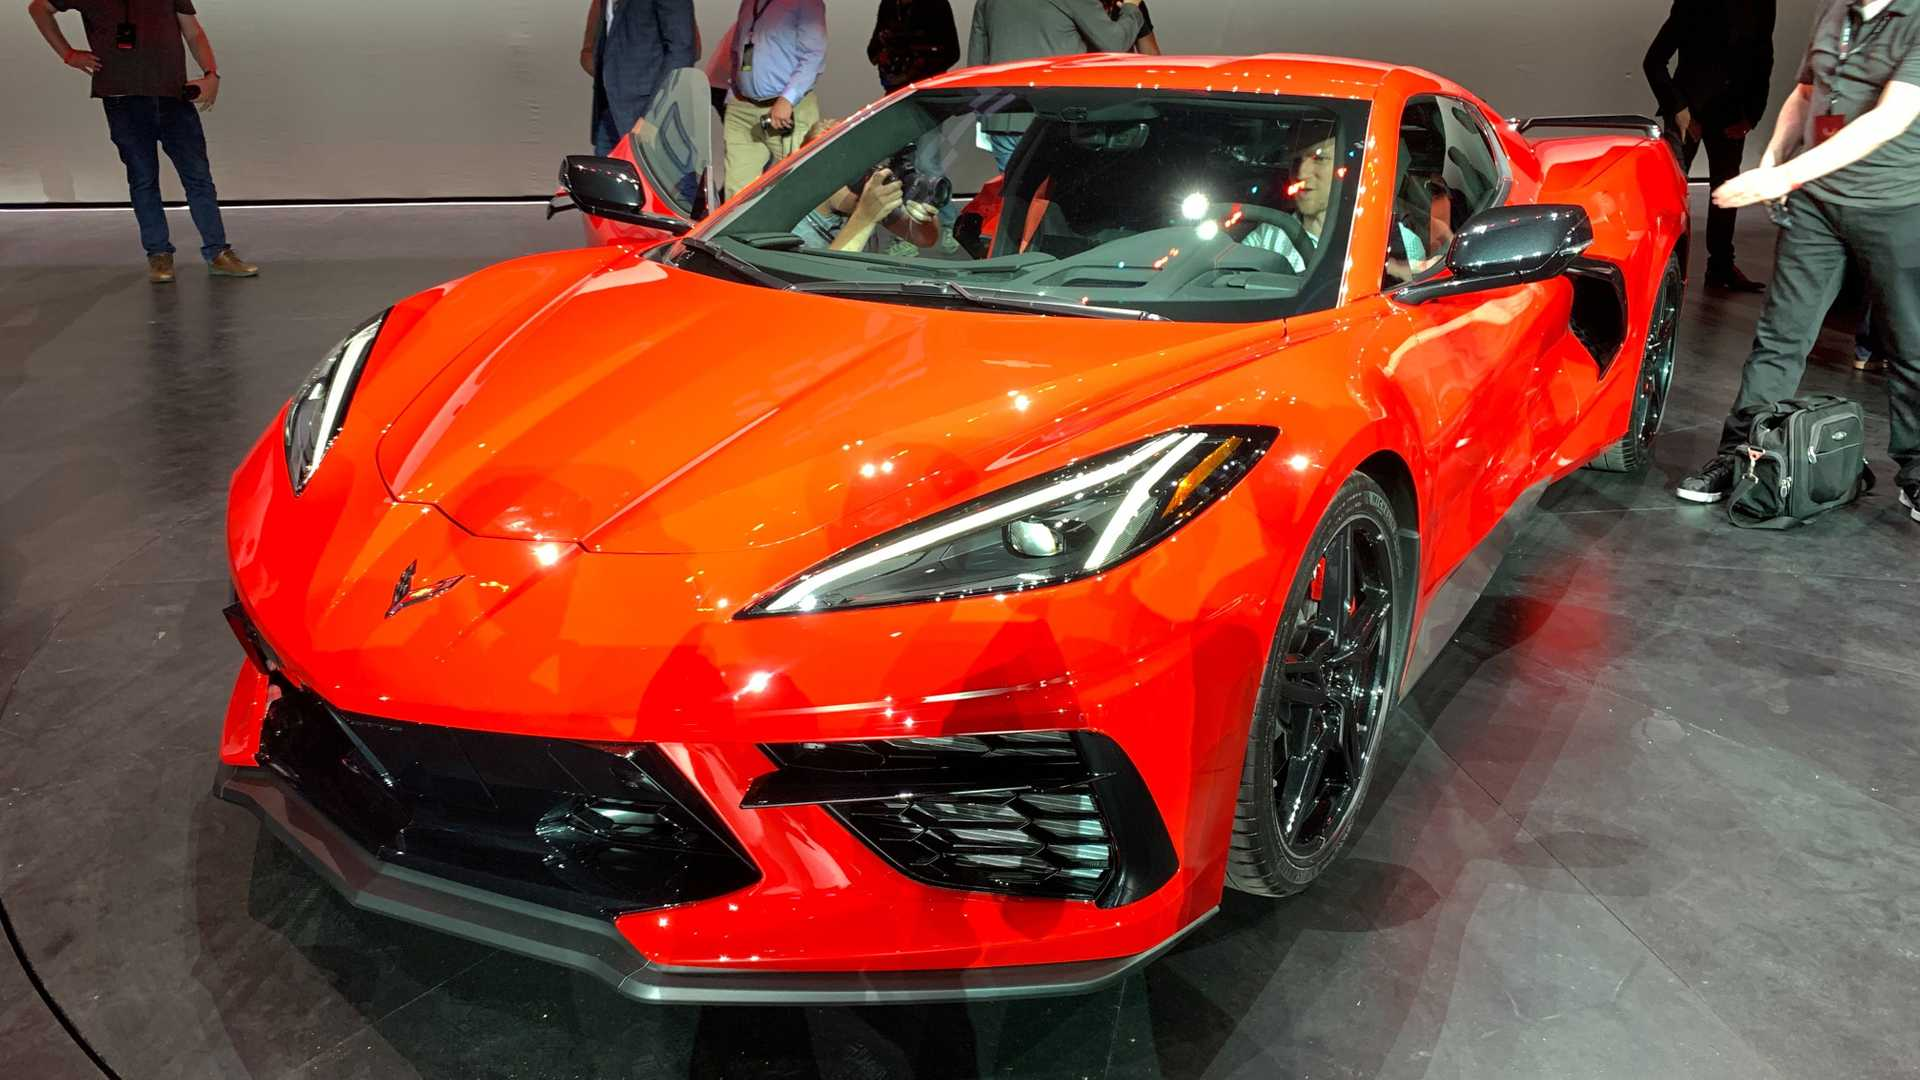 70 Concept of 2020 Chevrolet Corvette Zr1 Images with 2020 Chevrolet Corvette Zr1